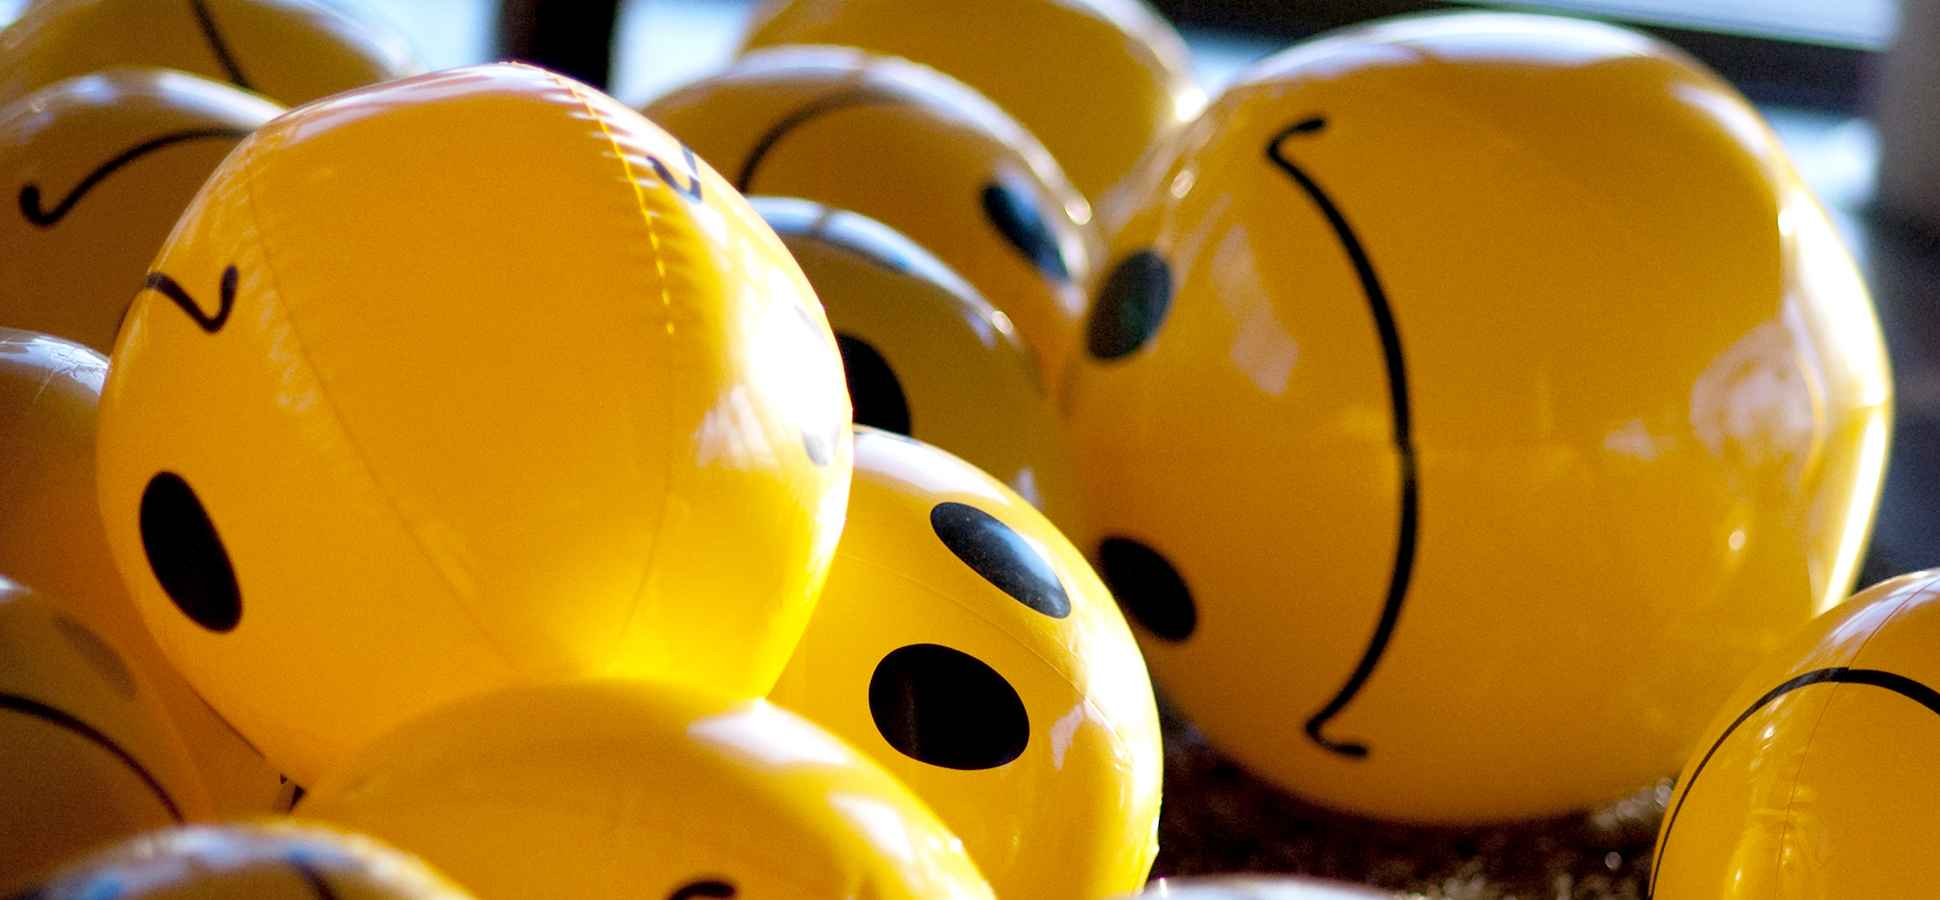 9 Simple Ways You Can Make Your Employees Happy